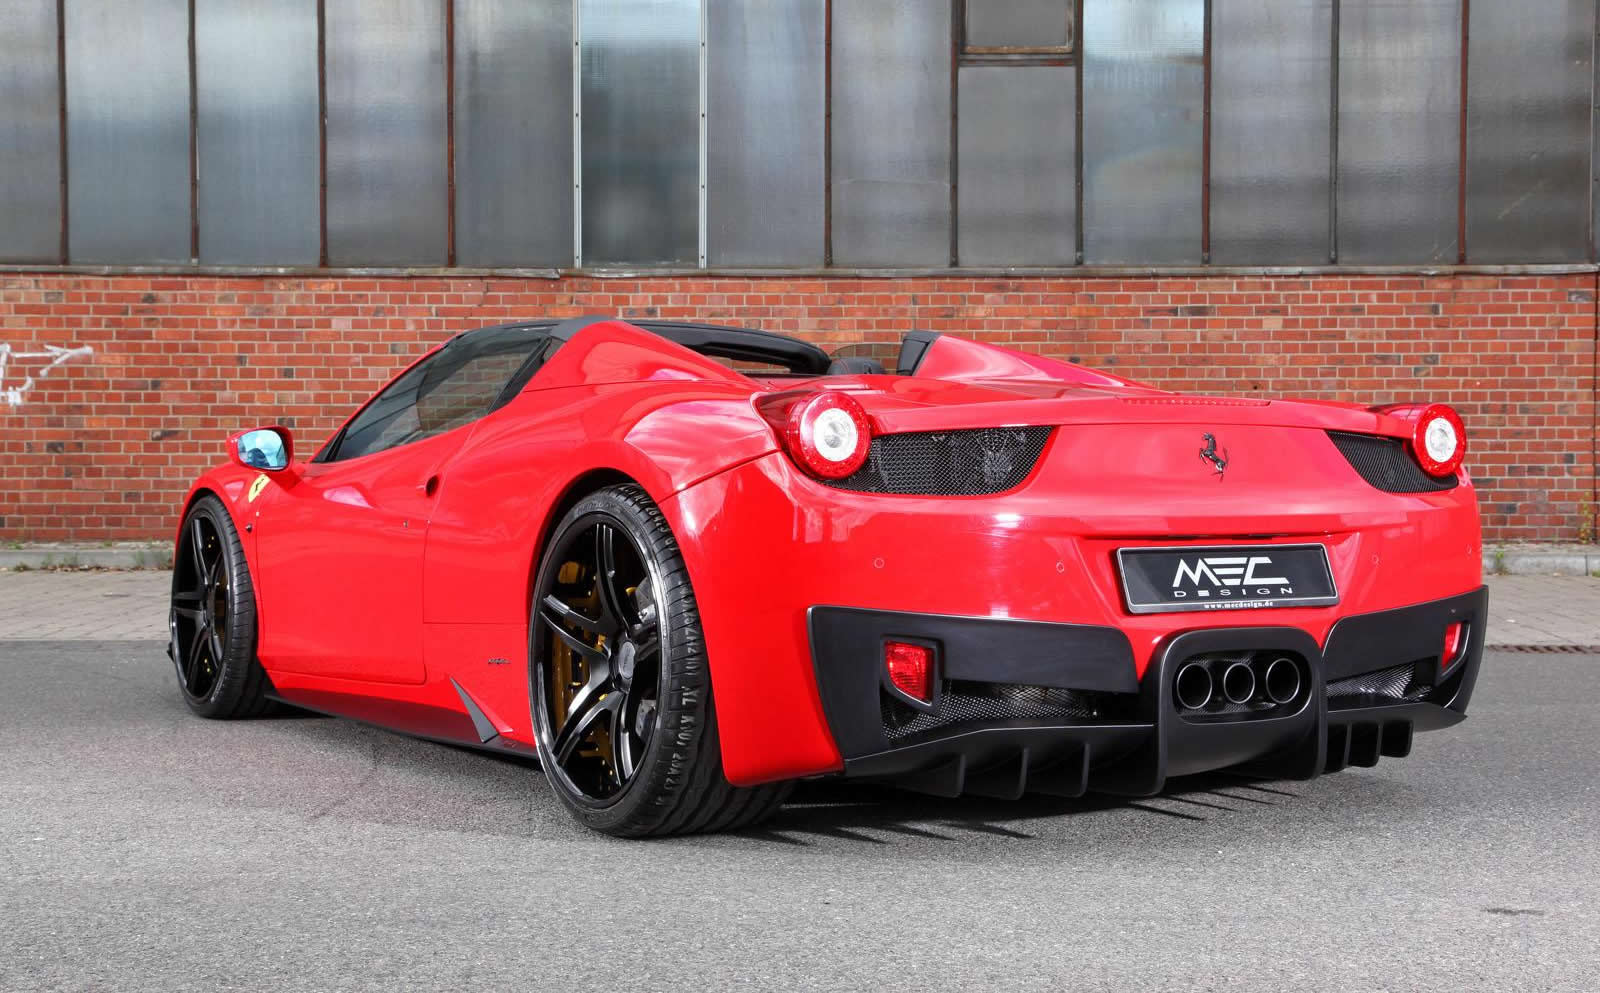 2014 ferrari 458 spider by mec design photos specs and. Black Bedroom Furniture Sets. Home Design Ideas